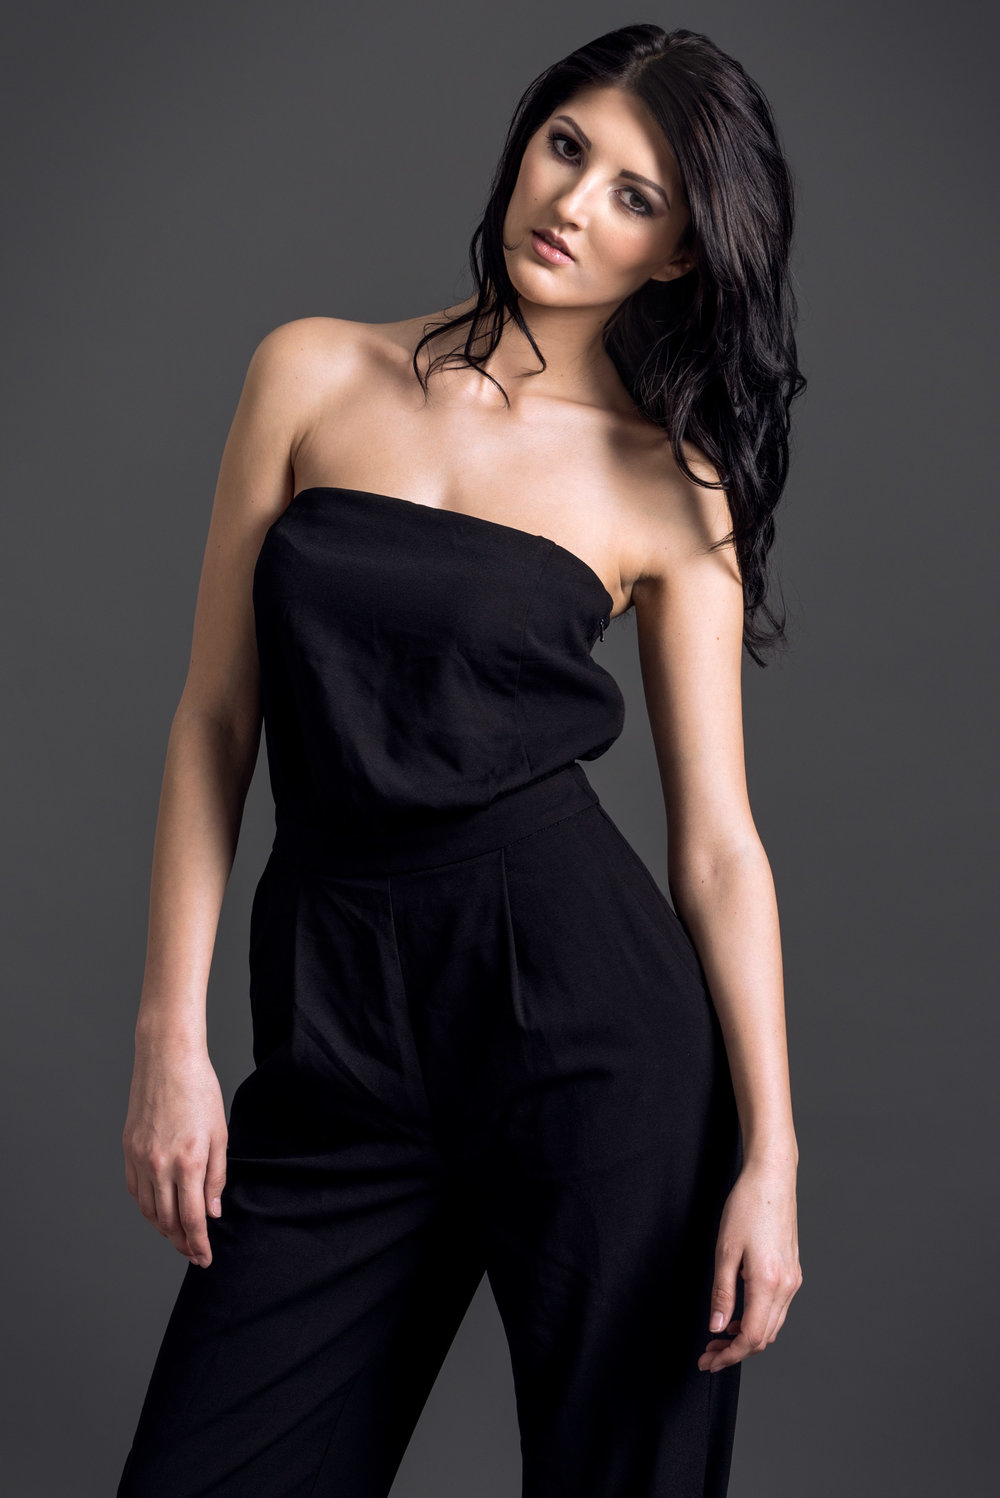 model-jumpsuit-mode-studio-portrati